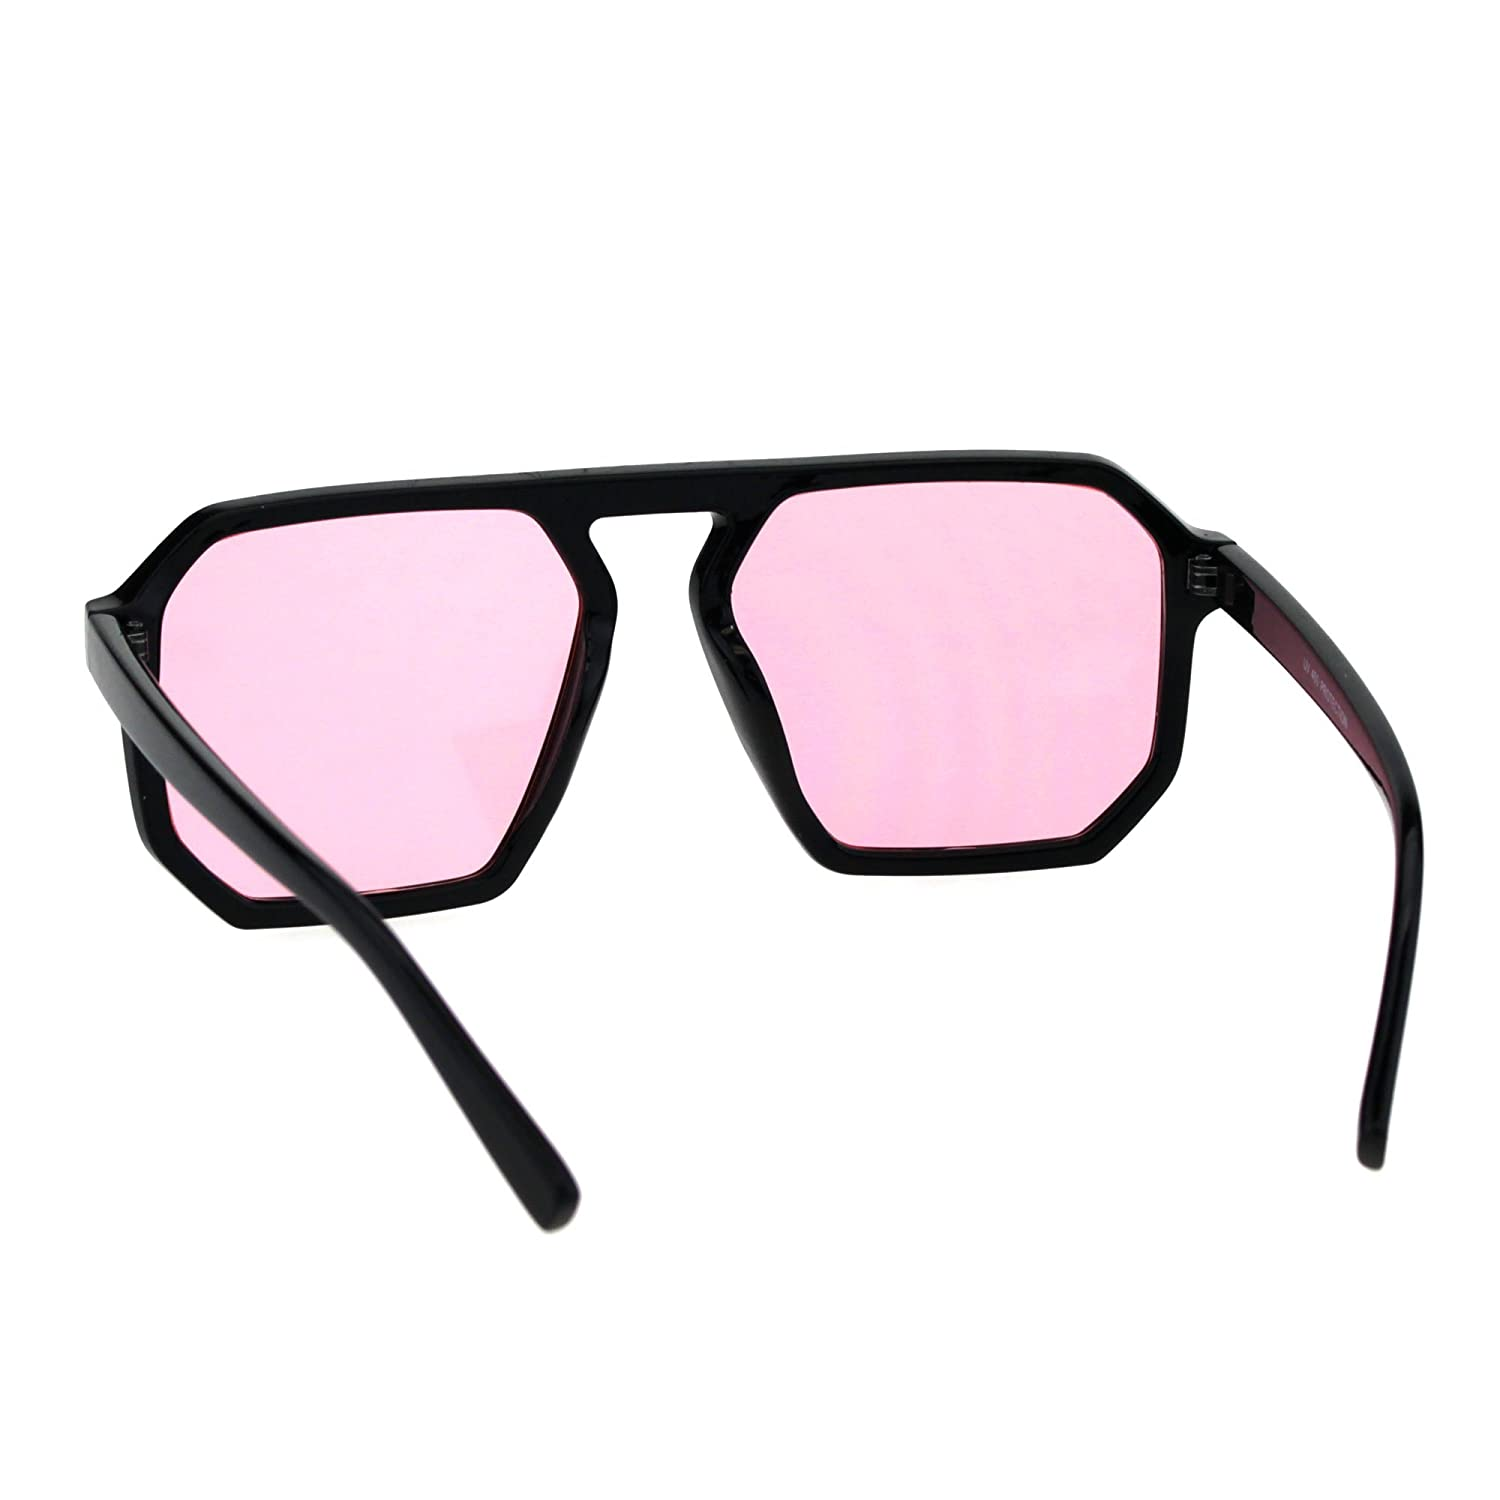 Mens Robotic Futuristic Racer Plastic Retro Pop Color Lens Sunglasses